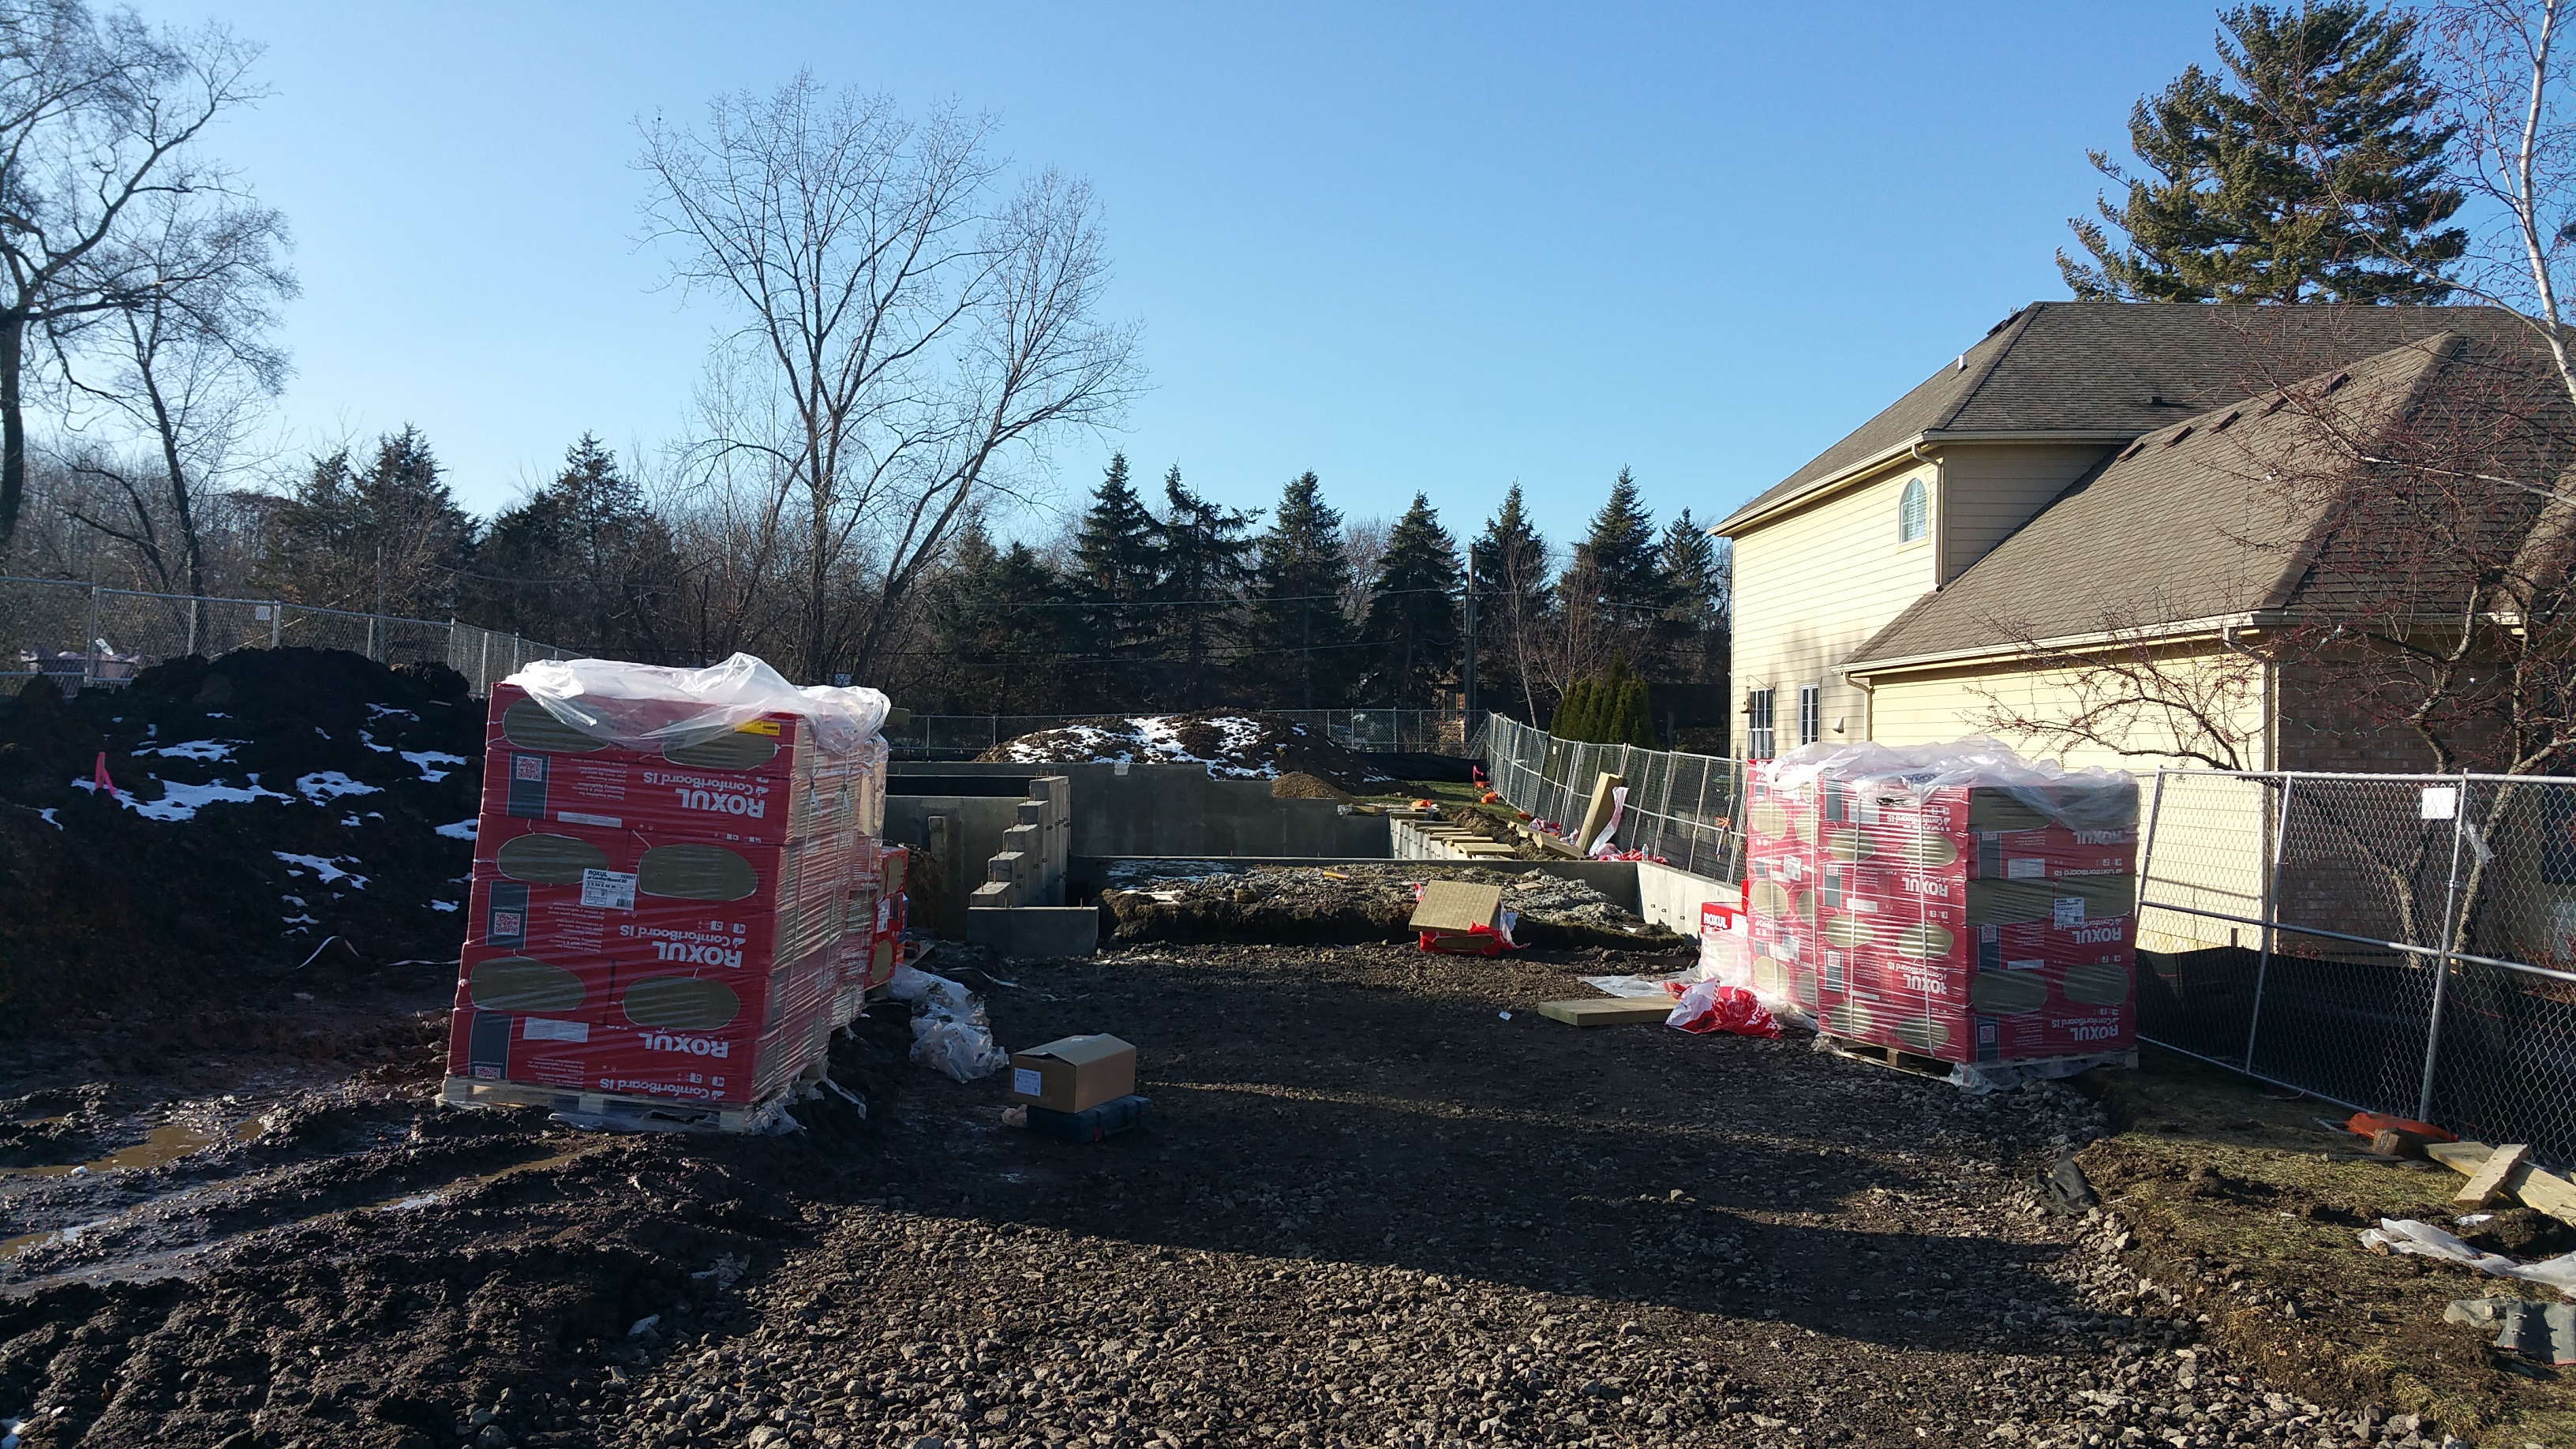 roxul-delivered-to-the-site